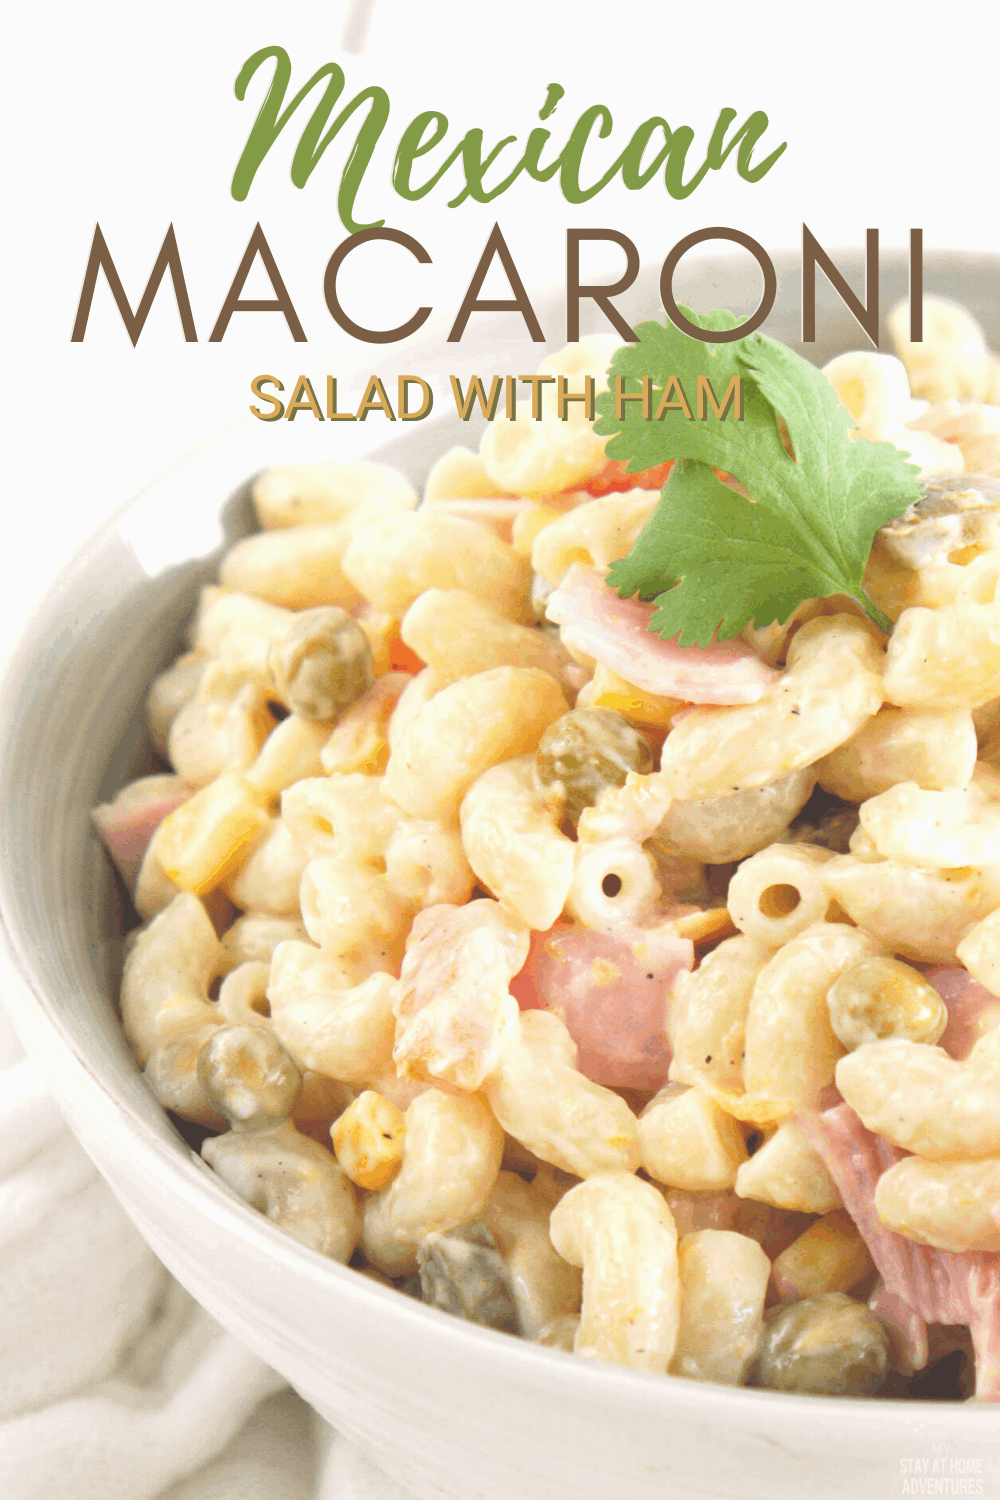 Mexican Macaroni Salad recipe it's an authentic, simple and flavorful pasta dish that comes together with ingredients you probably already have in your kitchen. Serve as a light main dish or as a side dish. #mexicanrecipe #pastasalad via @mystayathome